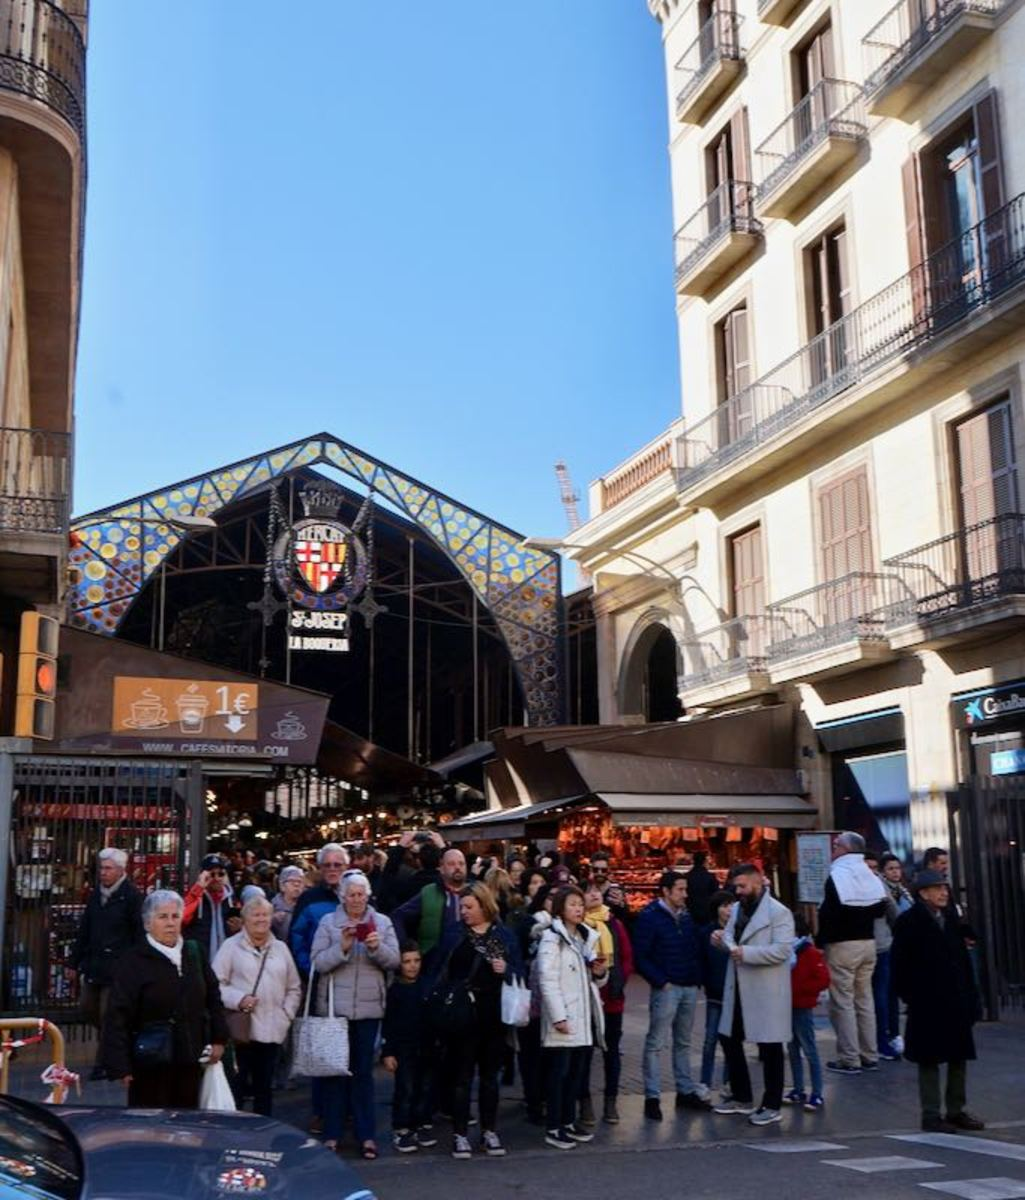 The Top Markets in Barcelona, Spain